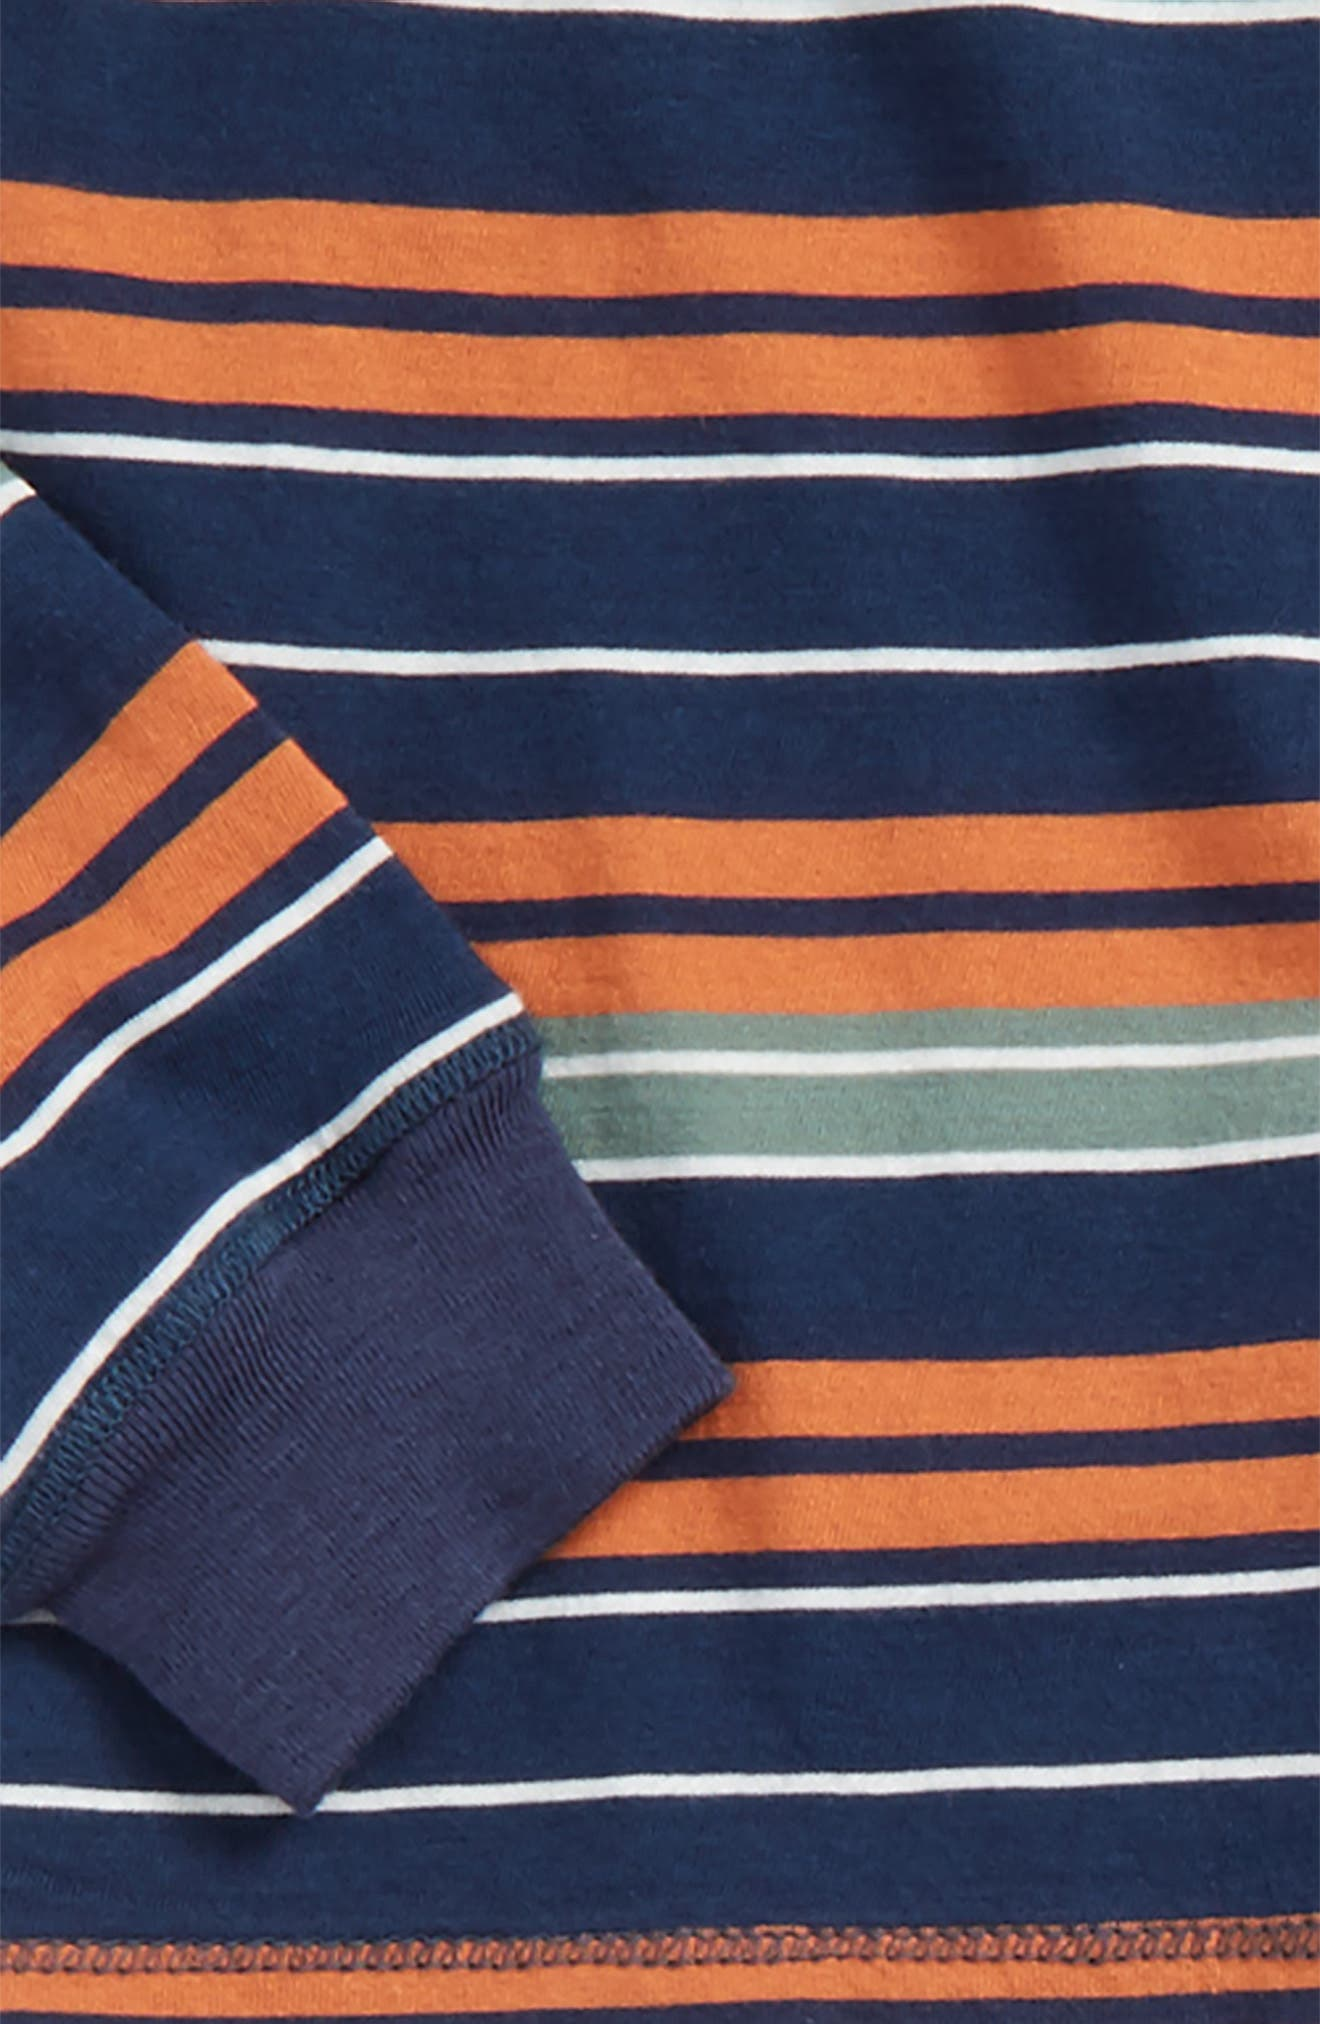 Alternate Image 2  - Splendid Stripe Henley Top & Sweatpants (Toddler Boys & Little Boys)